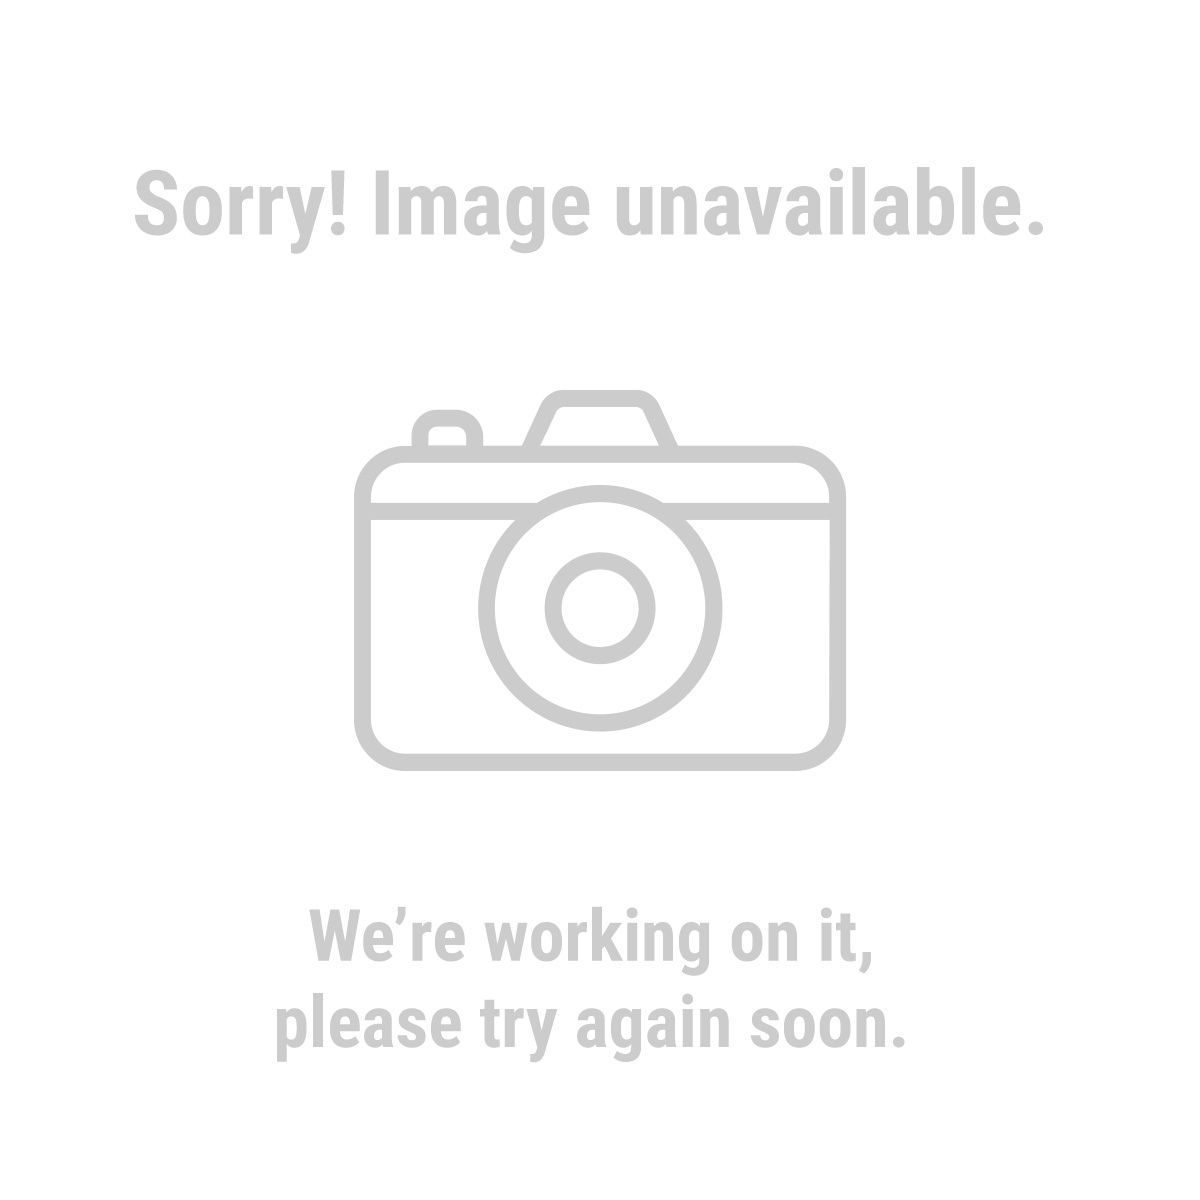 Haul-Master® 44649 1000 Lb. Steel Loading Ramps, Set of Two